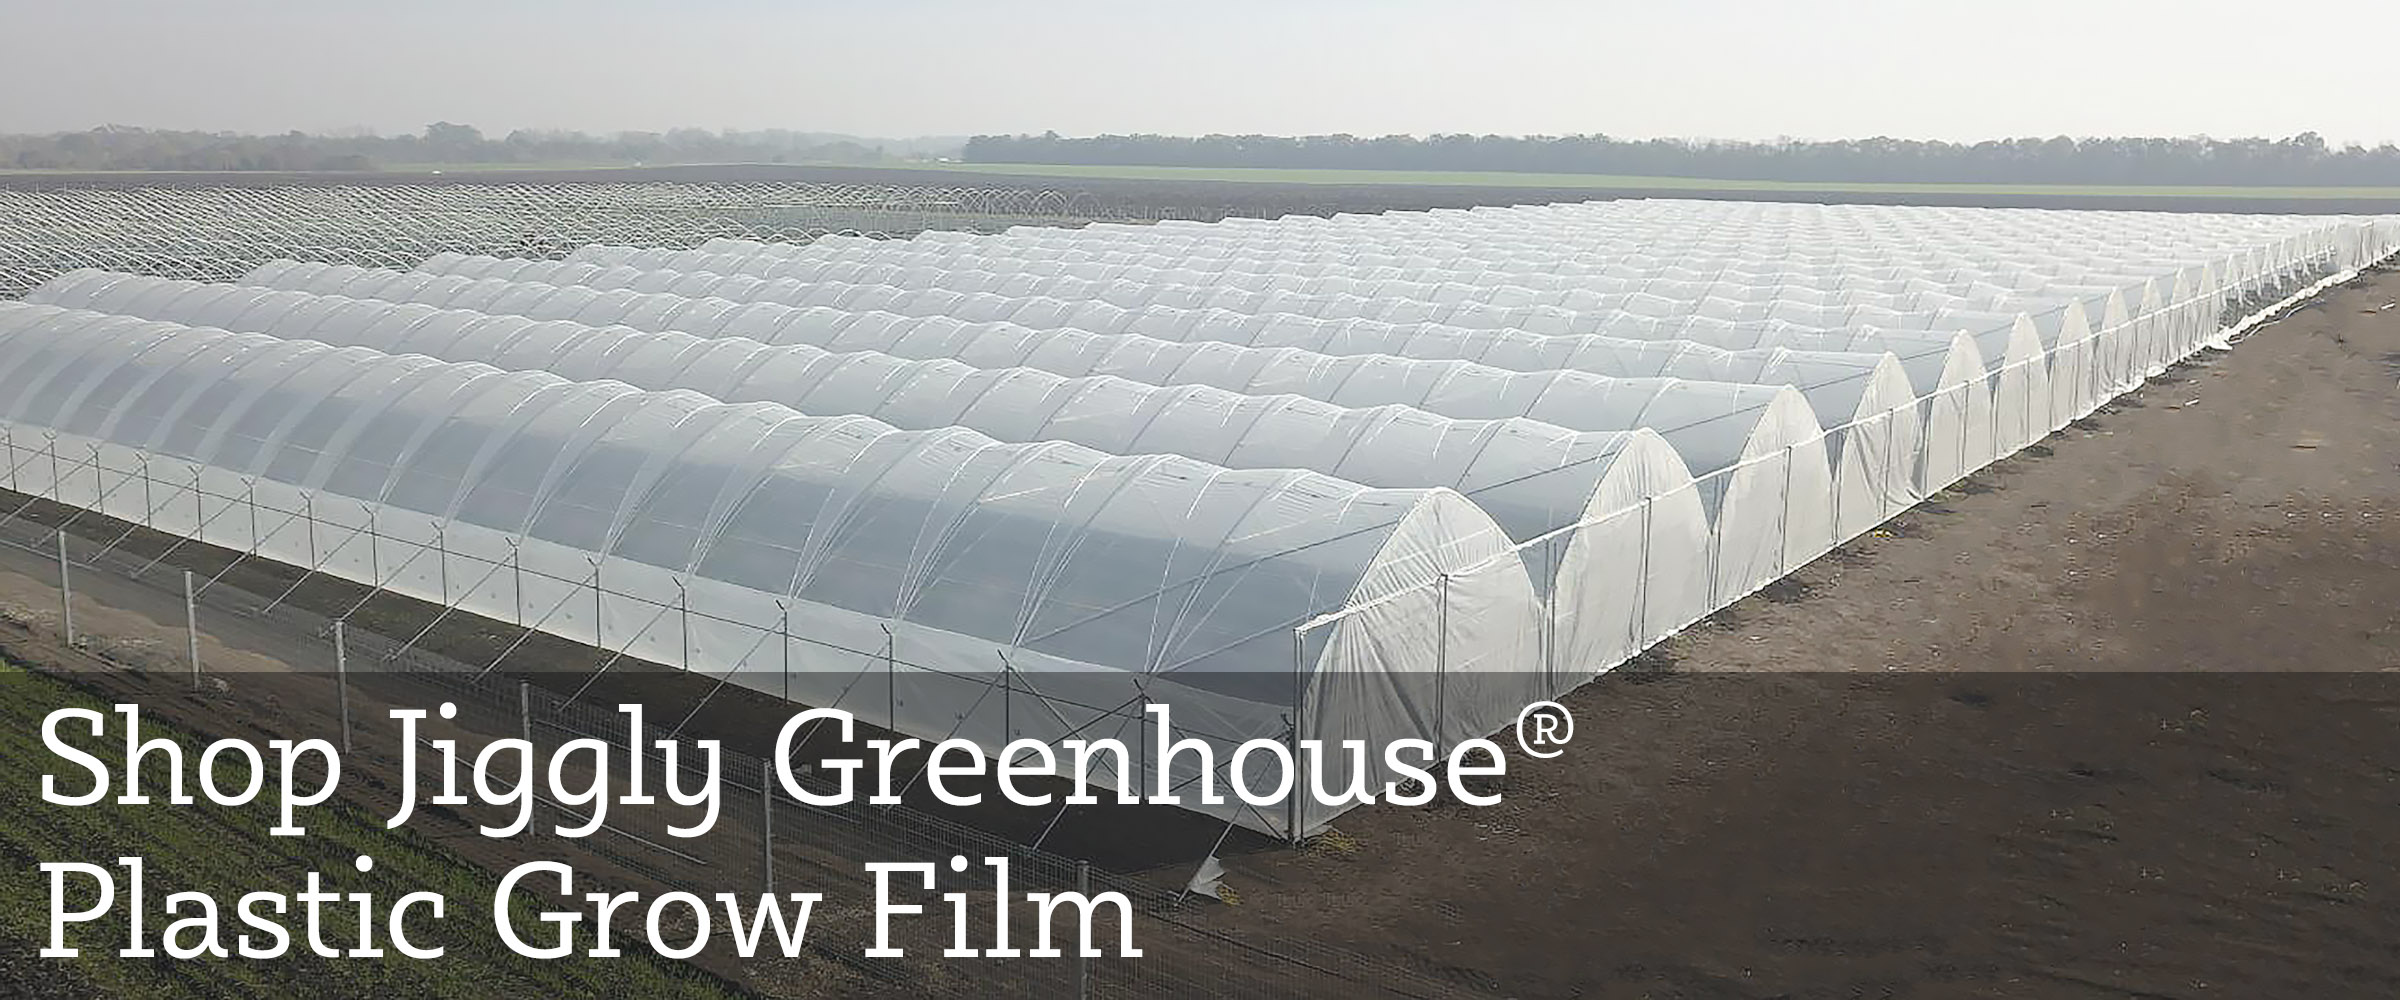 Check Out Our Jiggly Greenhouse Poly Plastic Greenhouse Grow Film!